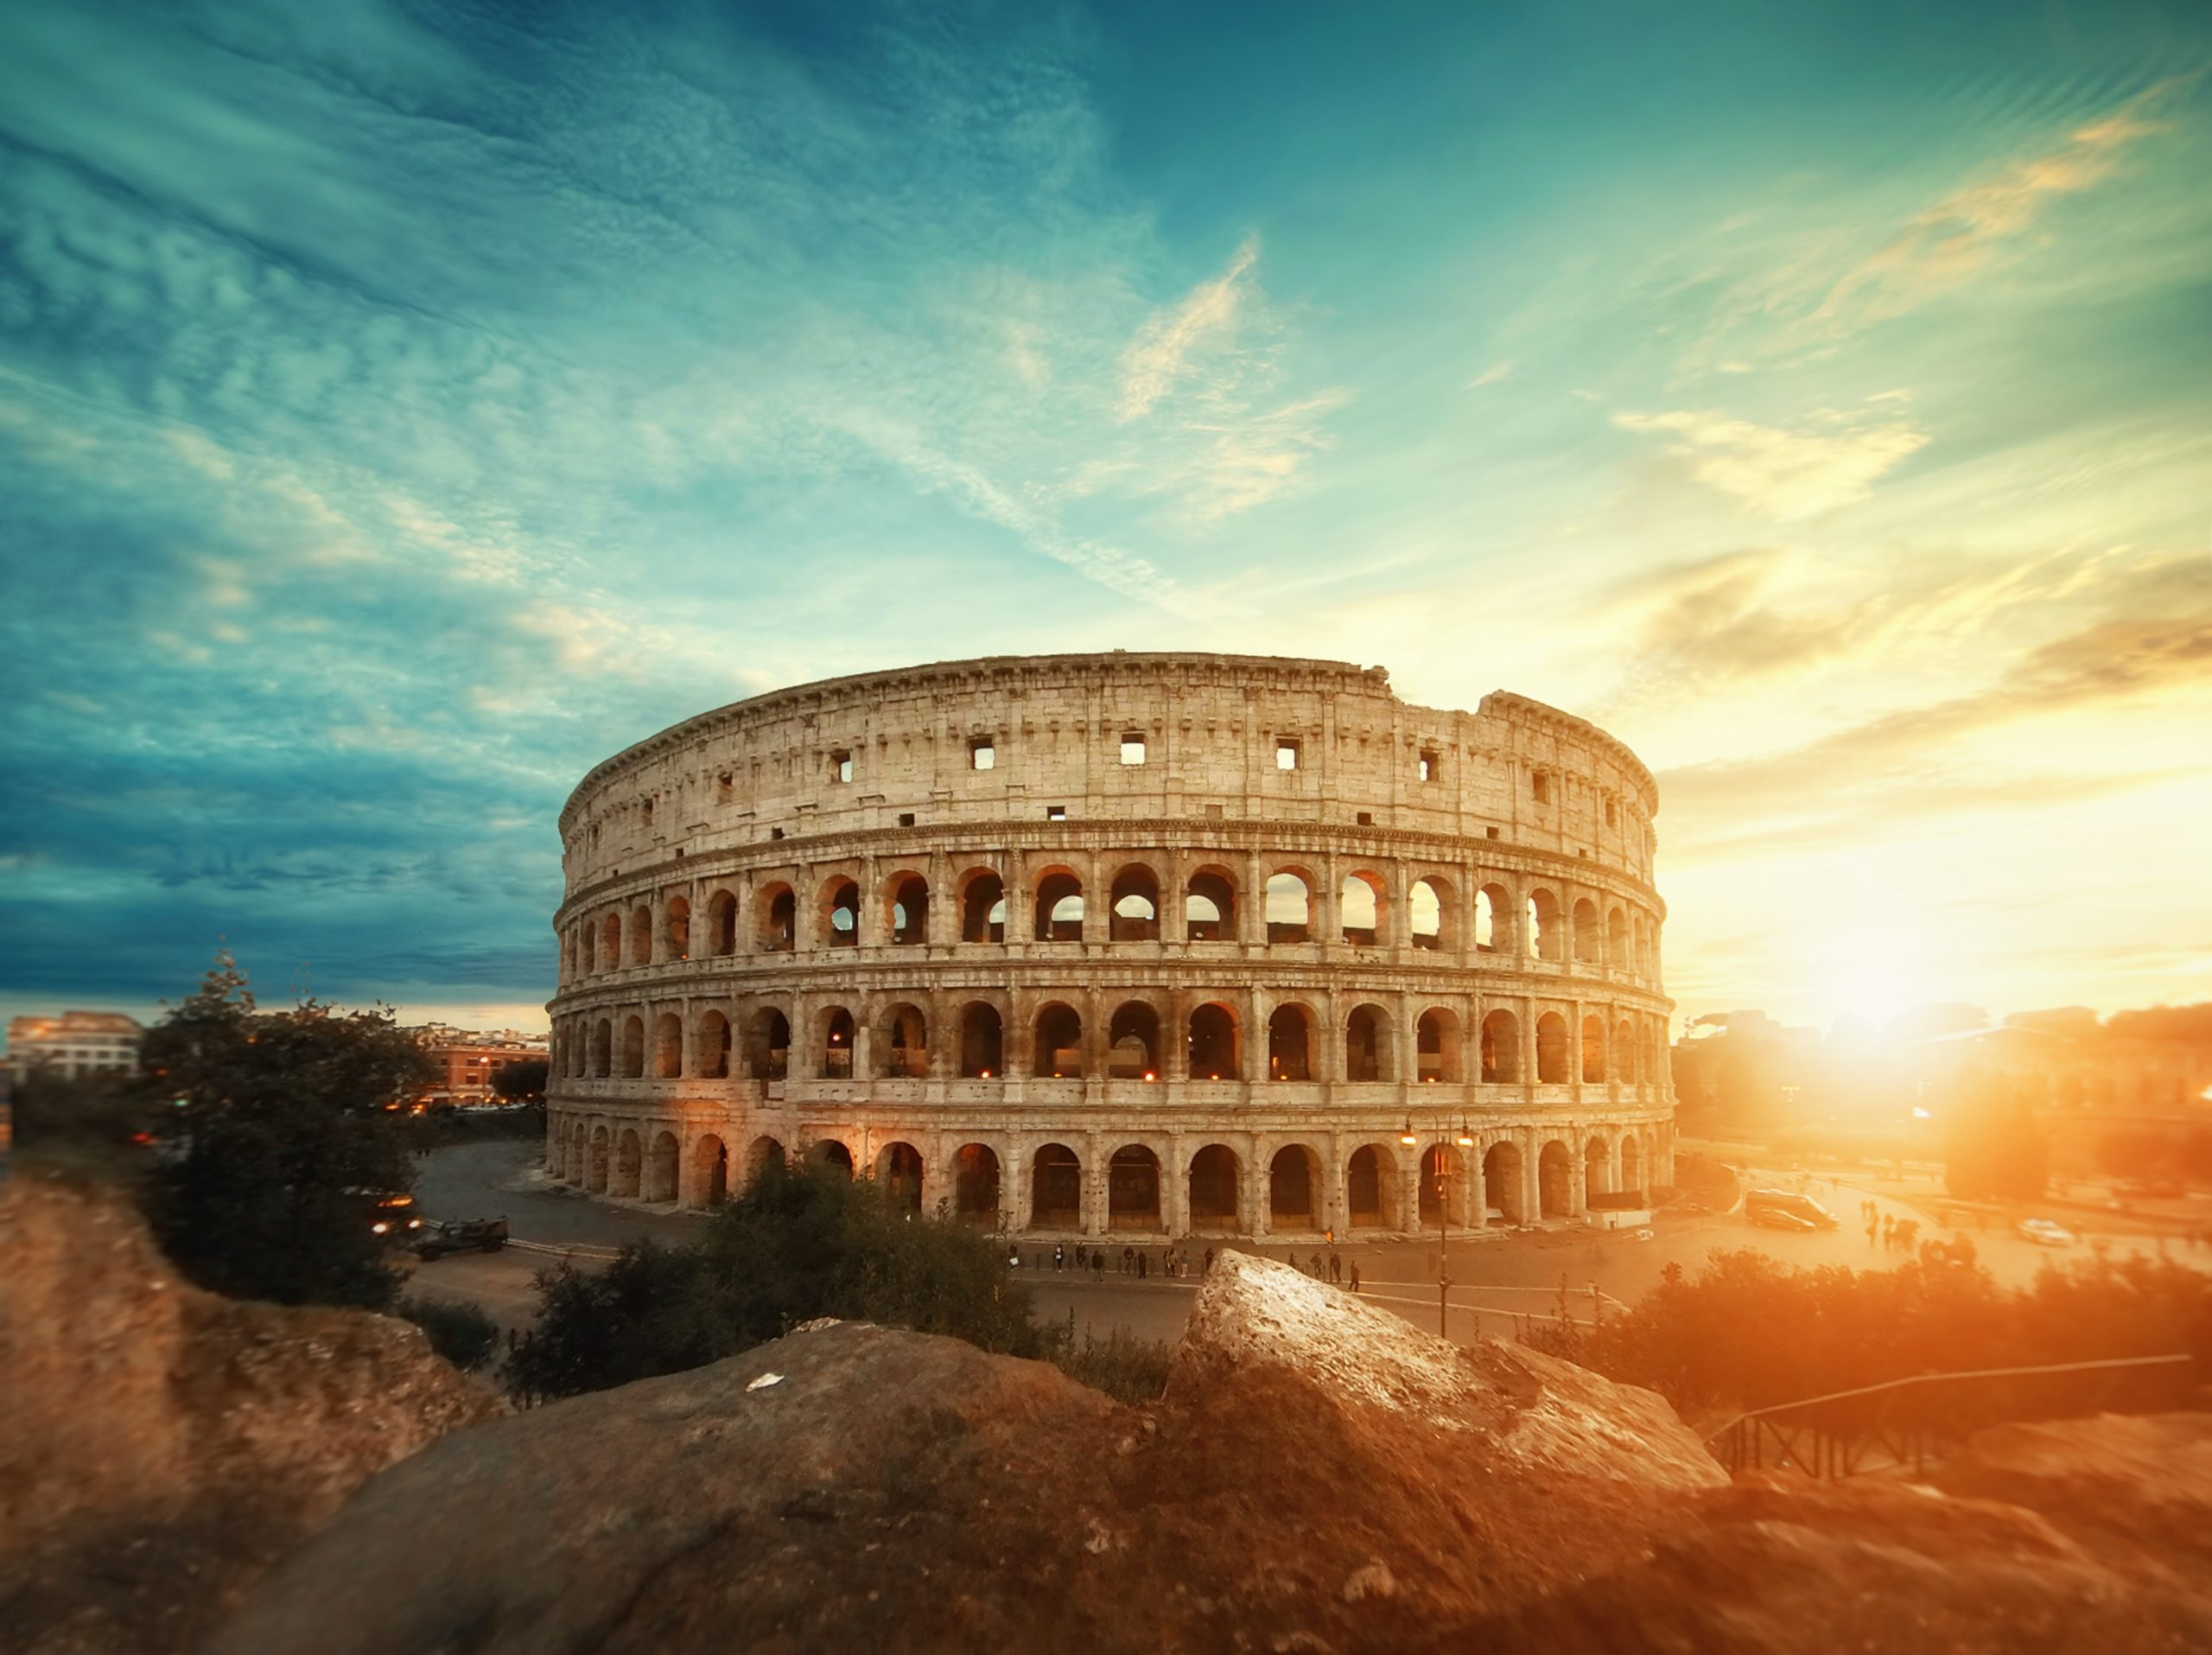 Rome wasn't built in a day, but you have to put your head into it!…